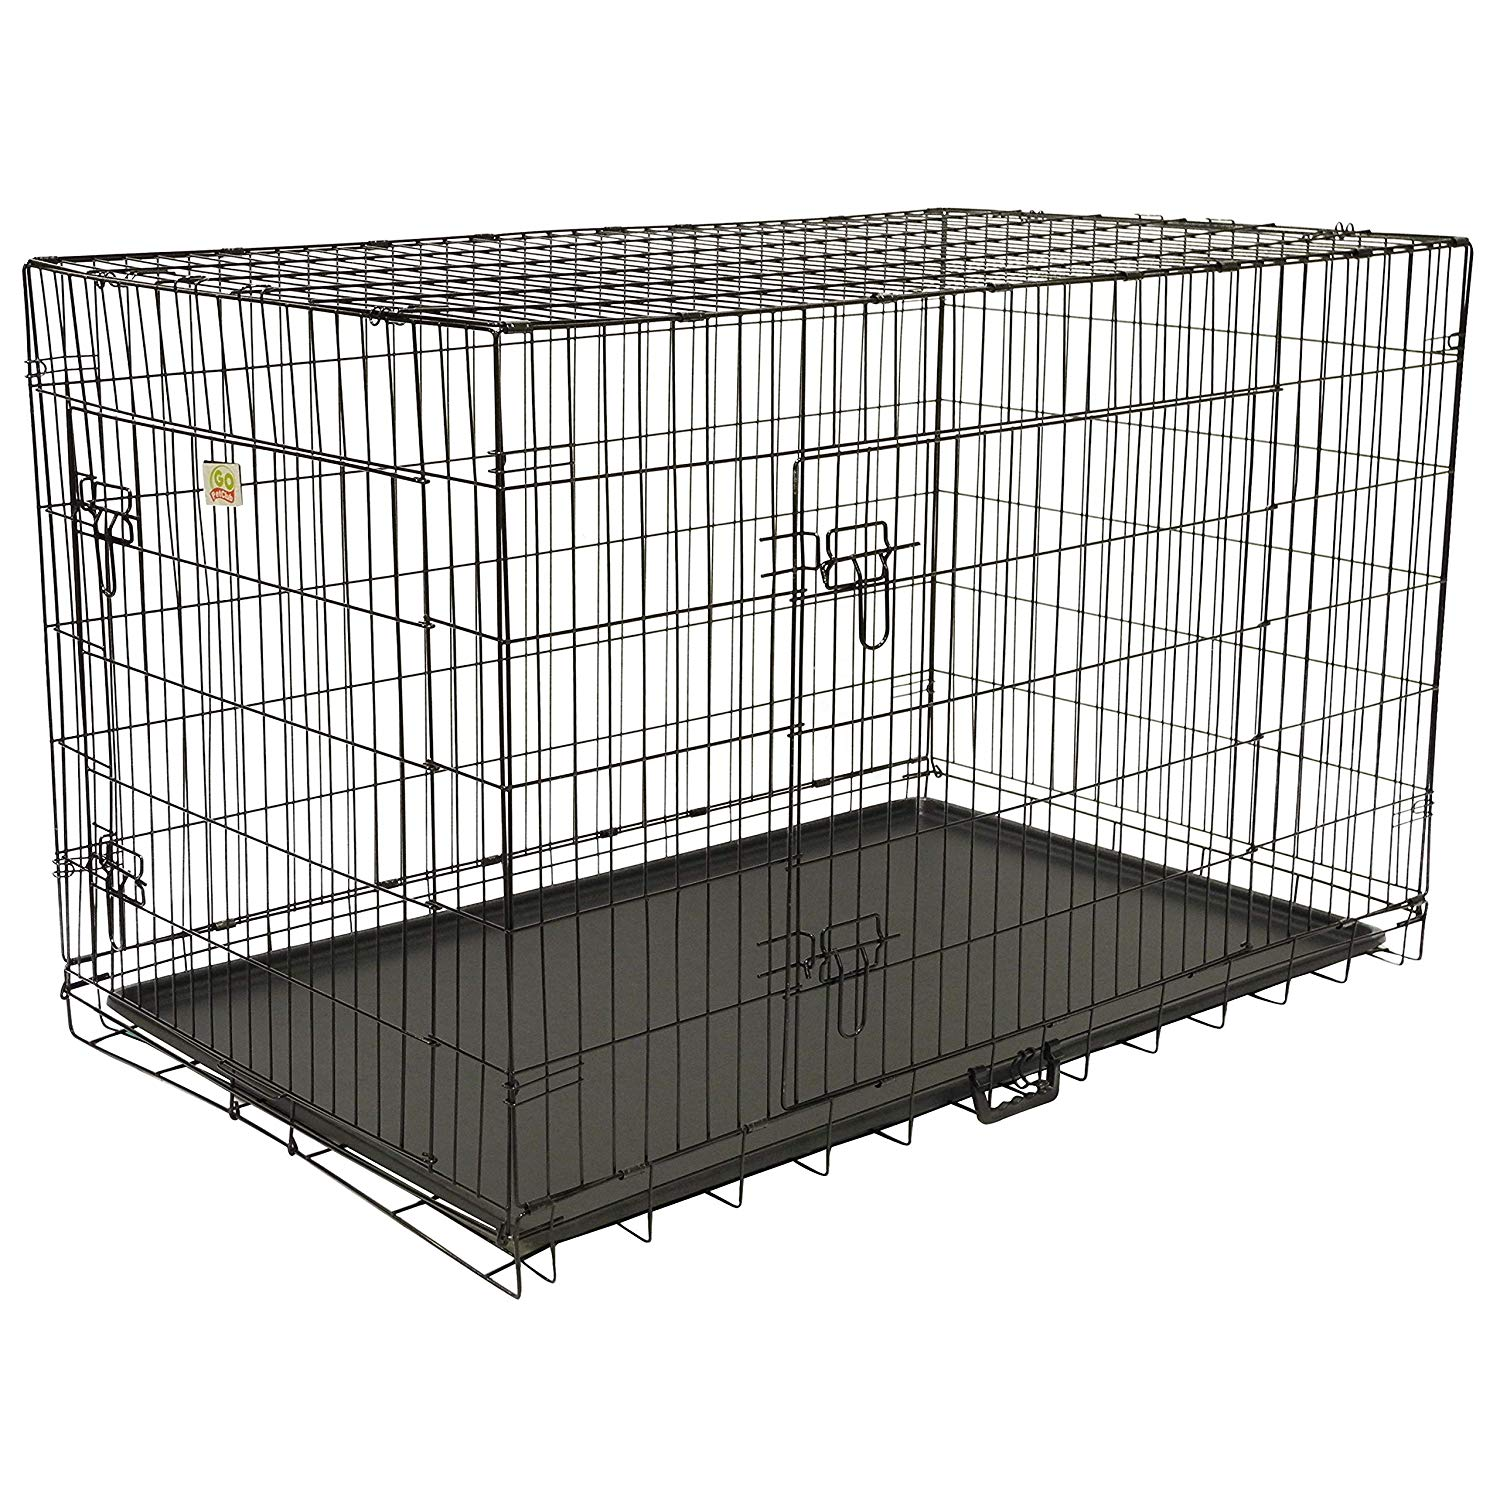 24 Dog Crate 2 Doors Kennel Collapsible Dog Cage Small Dogs Double Doors Metal Divider Folding Portable Strong Black